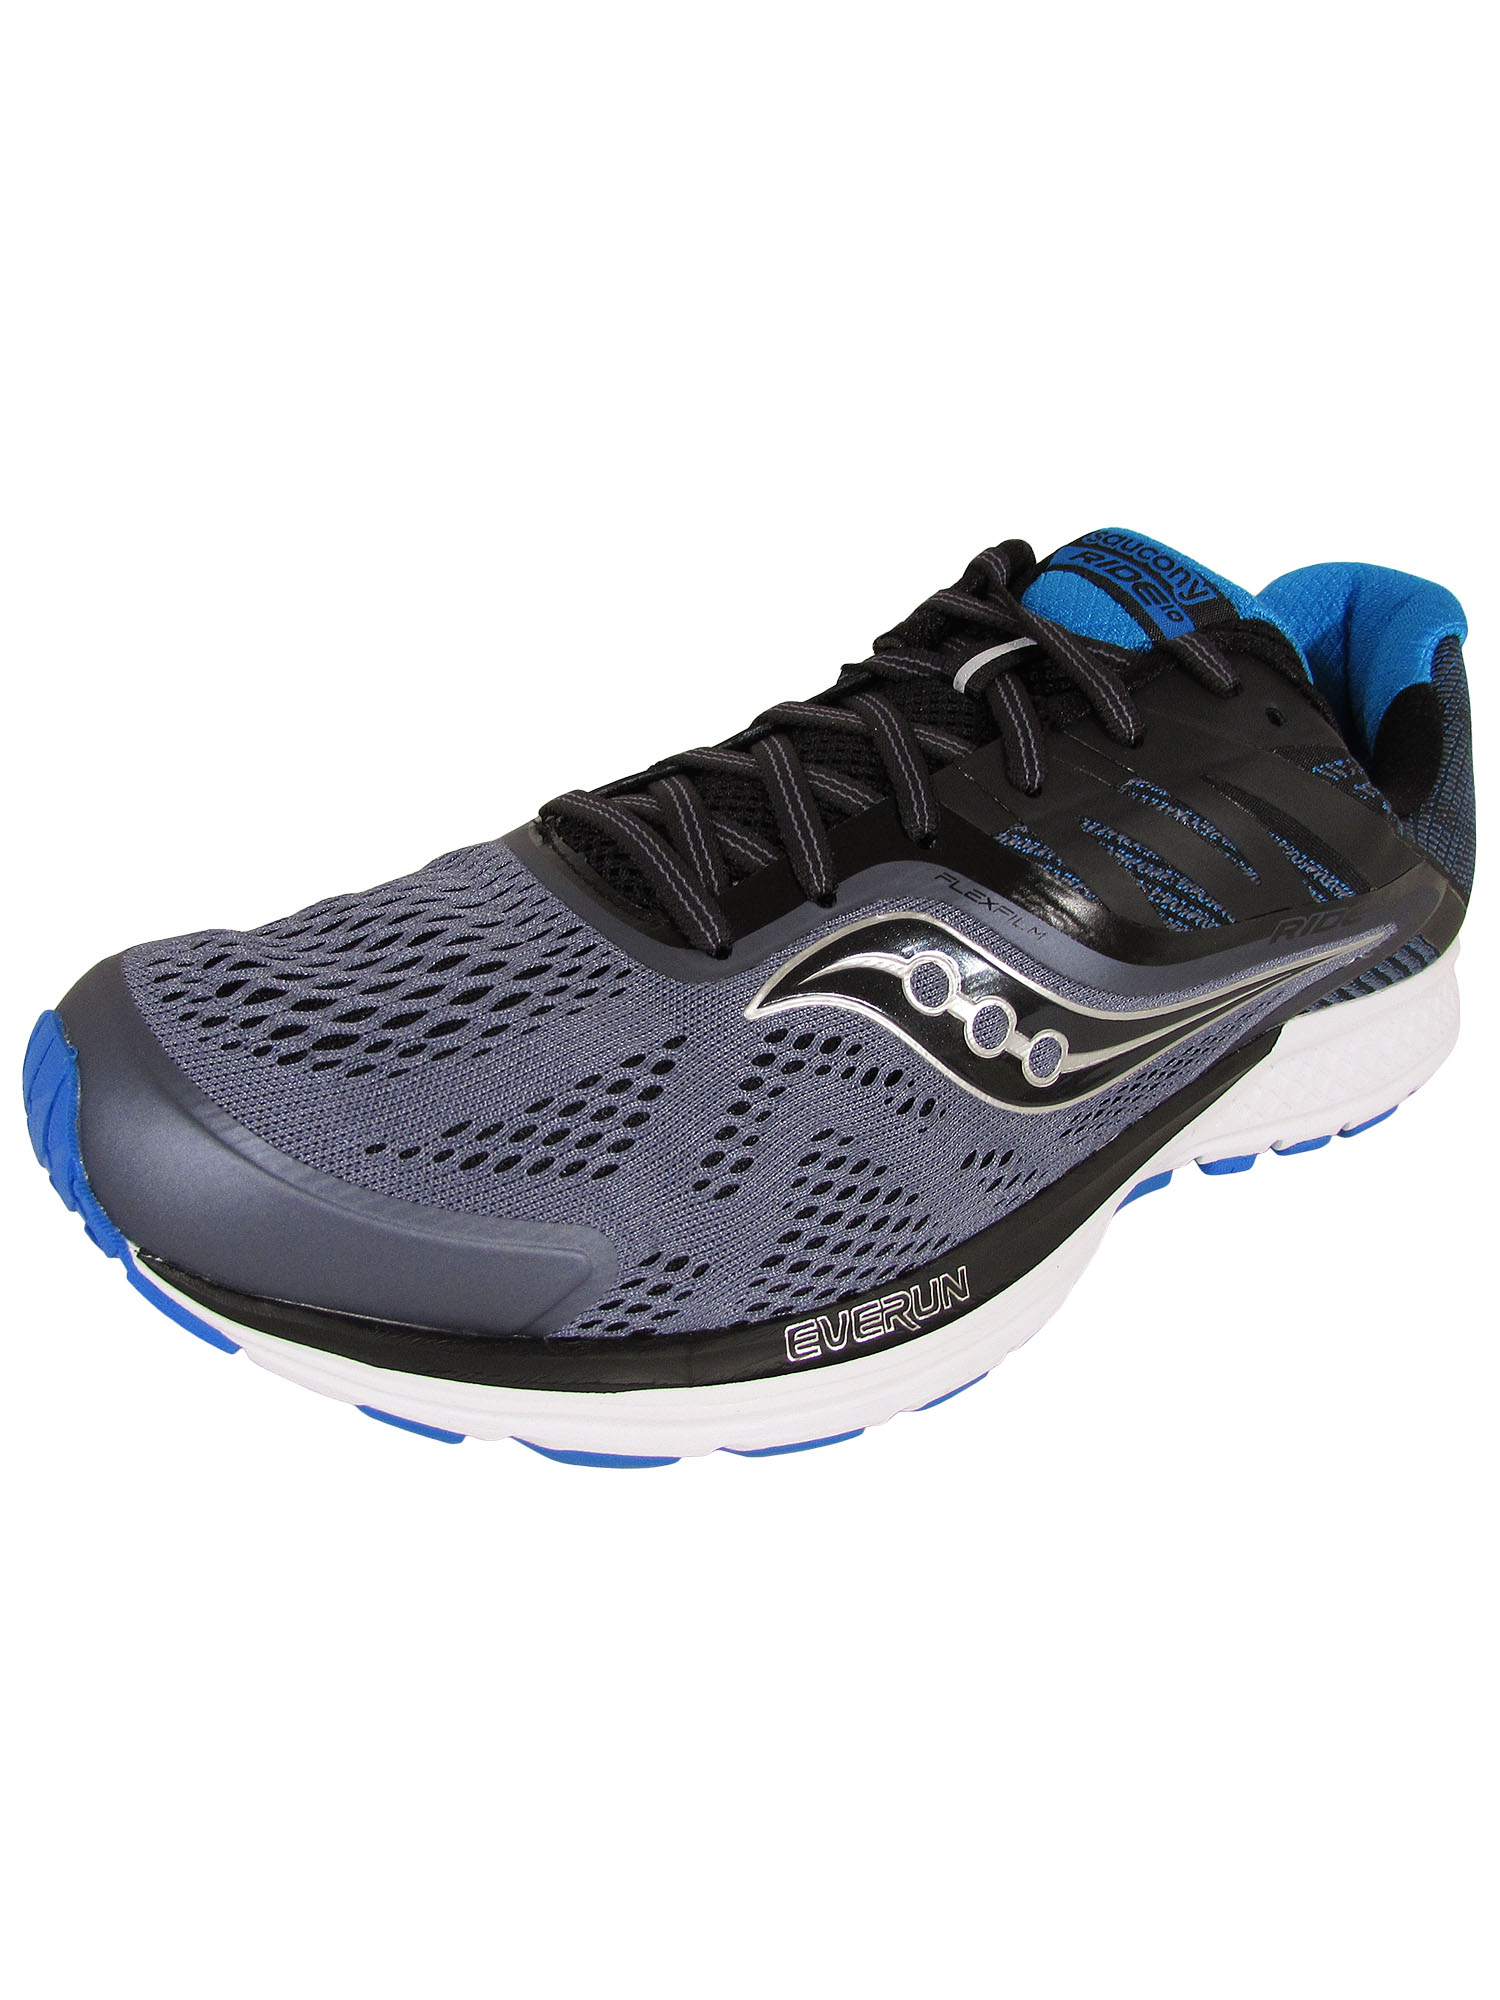 Saucony Mens Ride 10 Running Sneaker Shoes